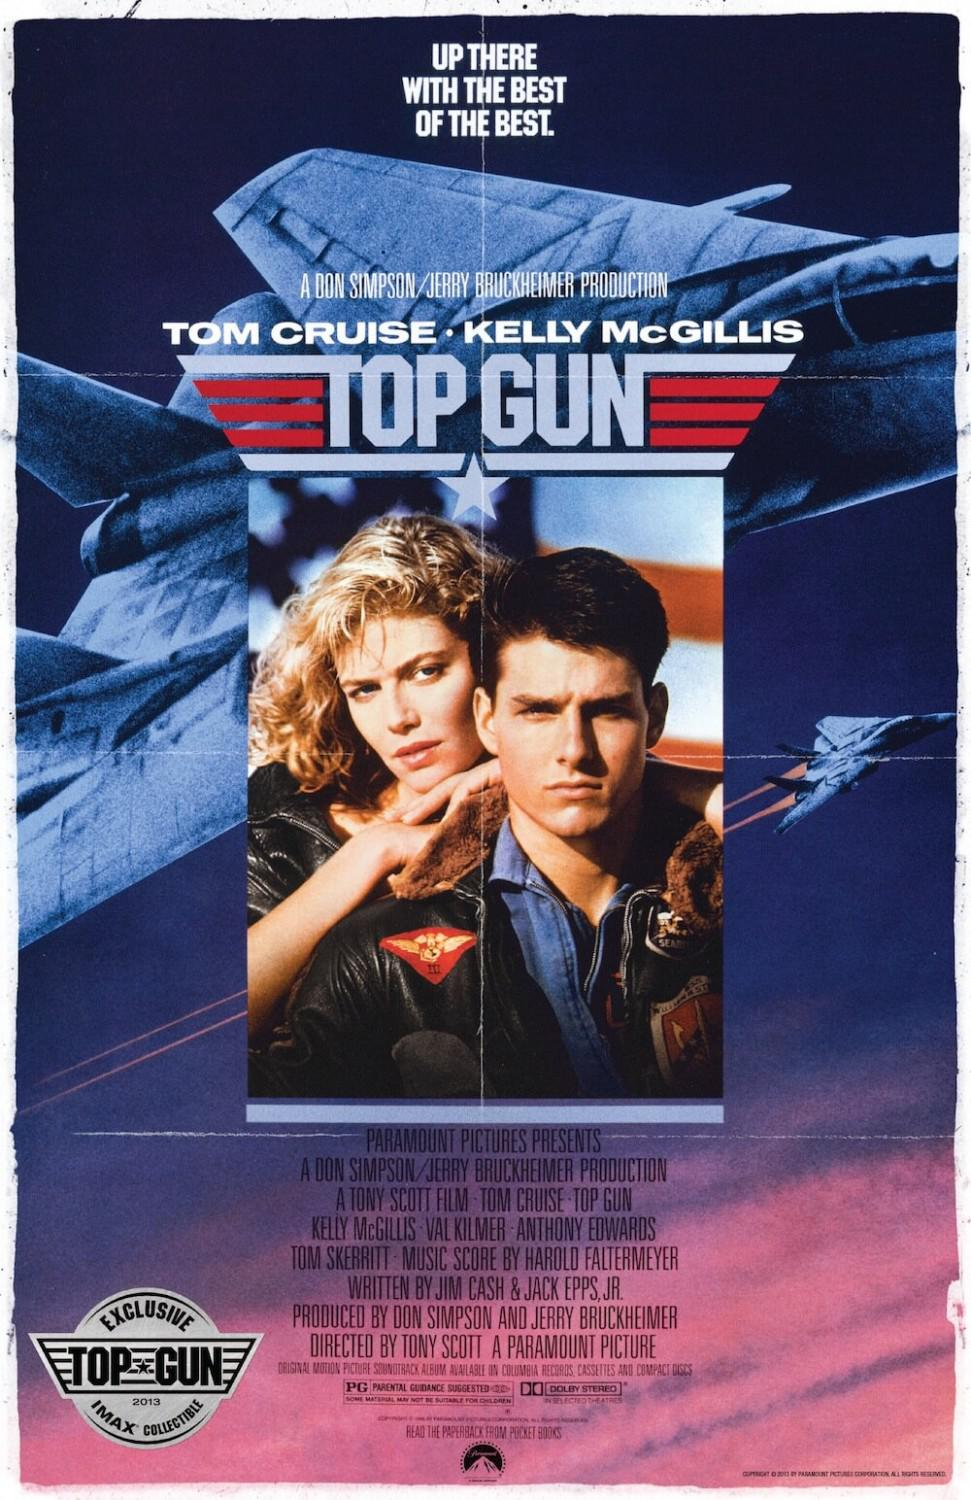 Top Gun - up there with the best of the best - Tom Cruise - Kelly McGillis